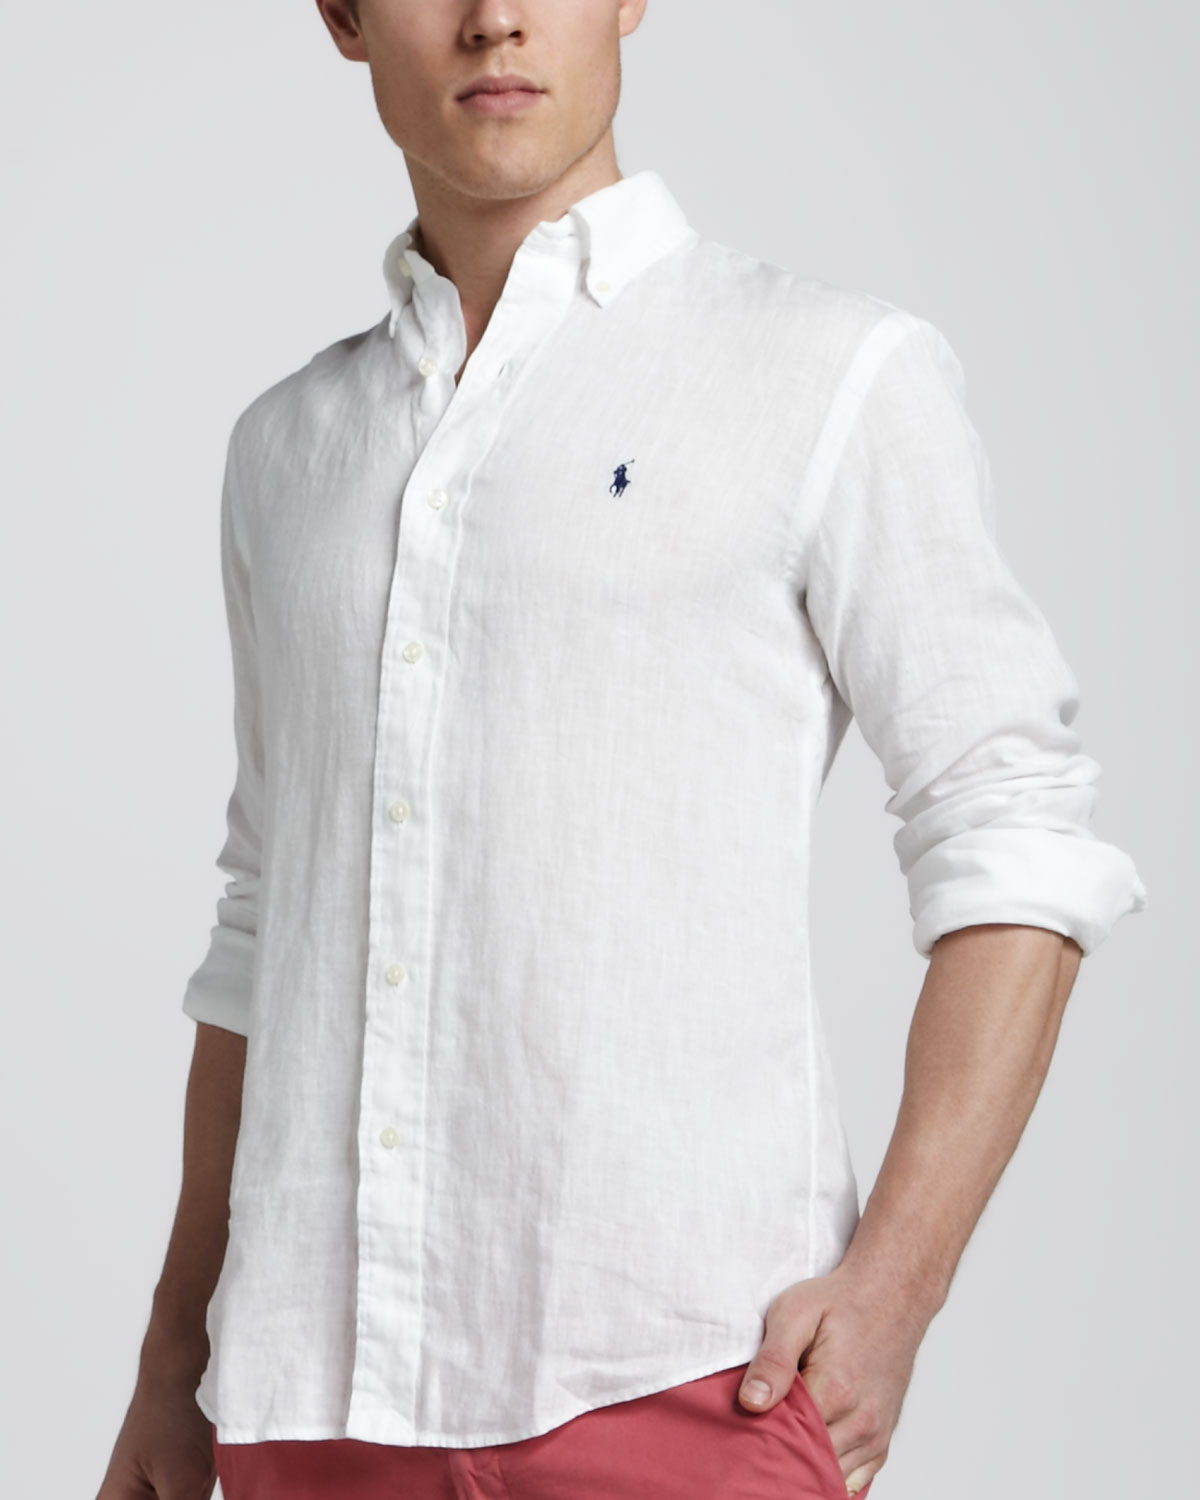 65f42523 Polo Ralph Lauren Linen Sport Shirt White for men